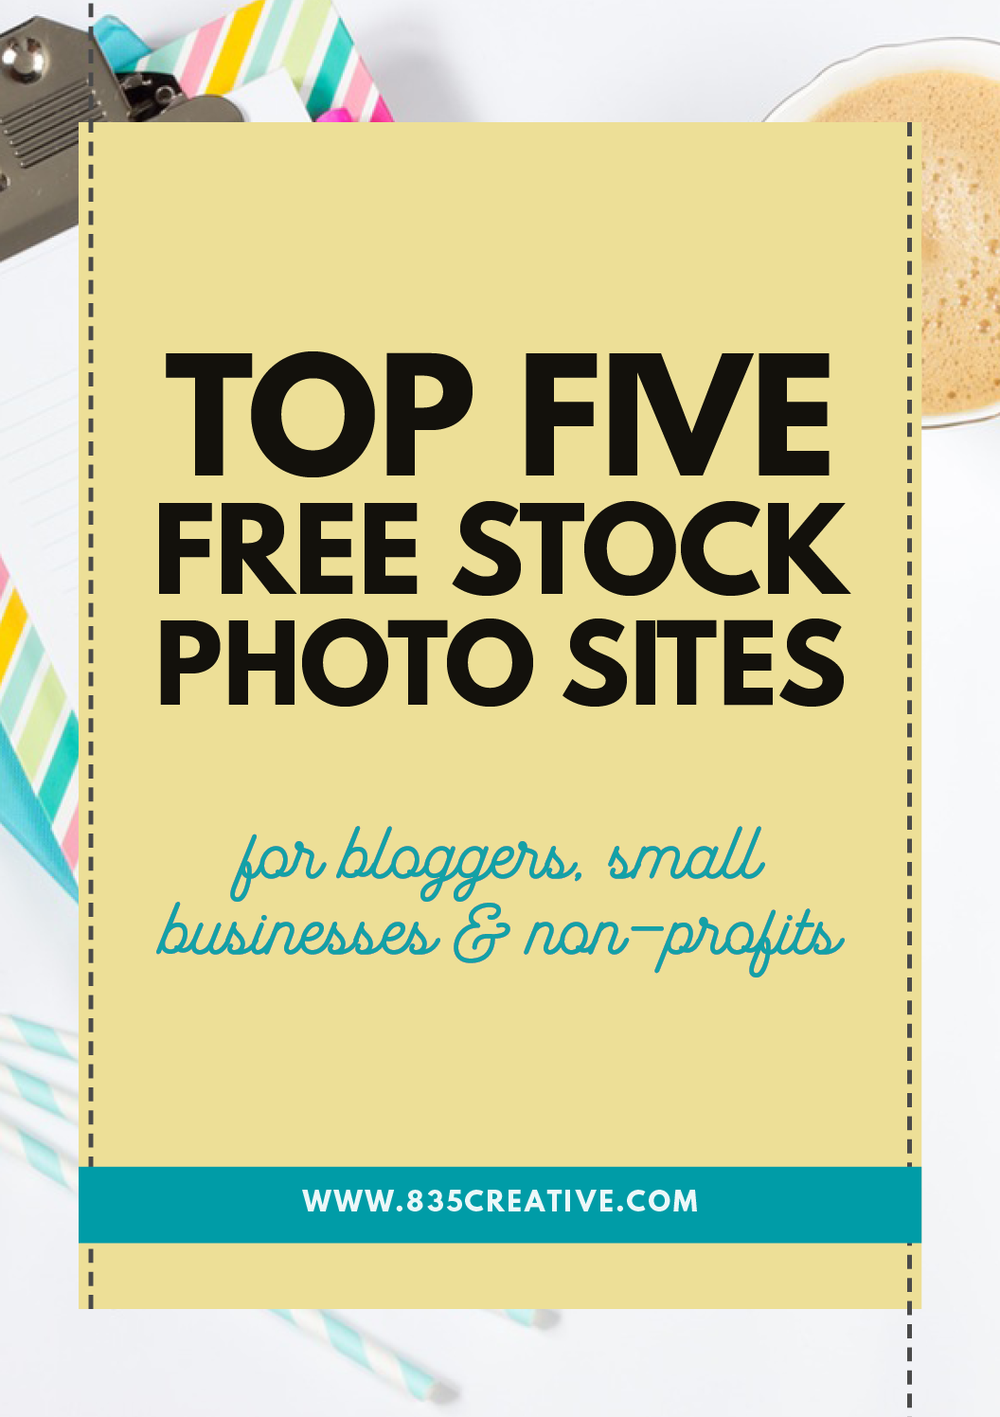 Best Free Stock Photo Sites for Bloggers, Small Businesses and Non-Profits